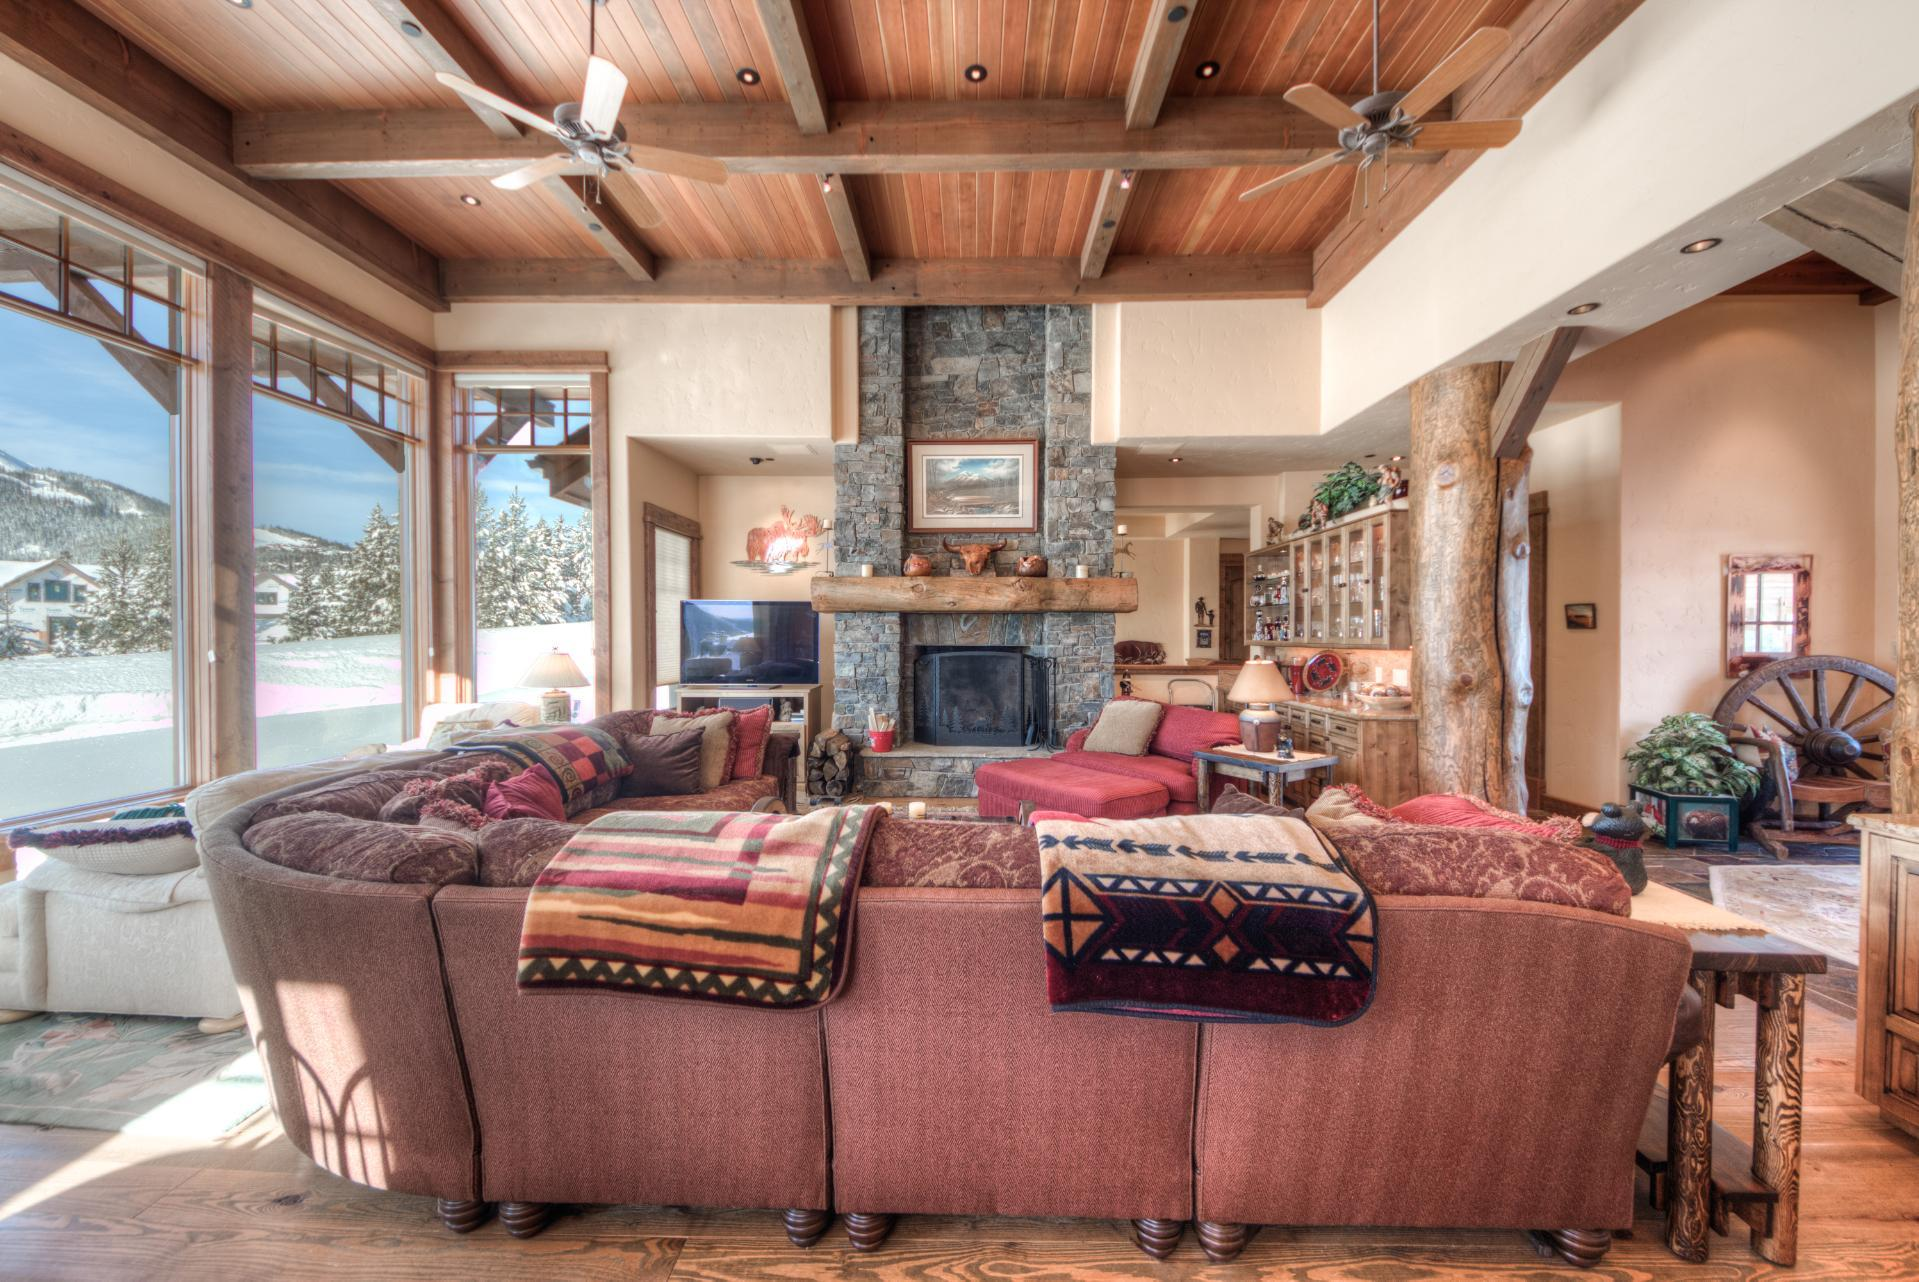 Property Image 2 - Family-Friendly Mountain Village Home with Game Room